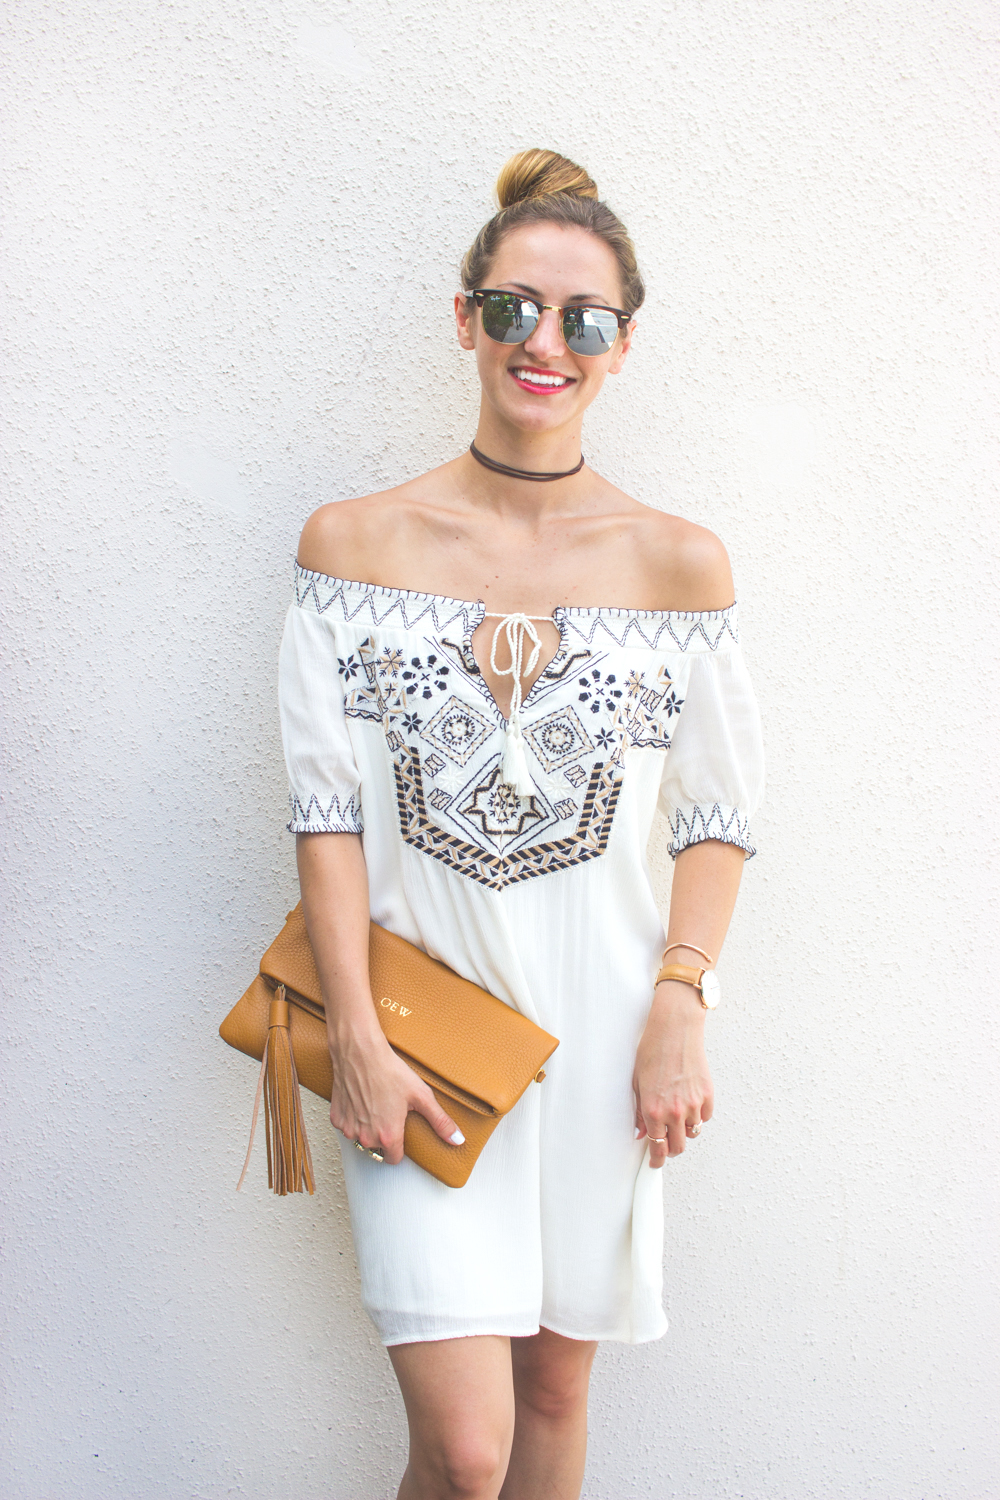 livvyland-blog-olivia-watson-austin-texas-fashion-blogger-abercrombie-and-fitch-embroidered-off-shoulder-dress-seychelles-platform-wedge-sandals-boho-outfit-ray-ban-reflective-clubmaster-summer-outfit-5